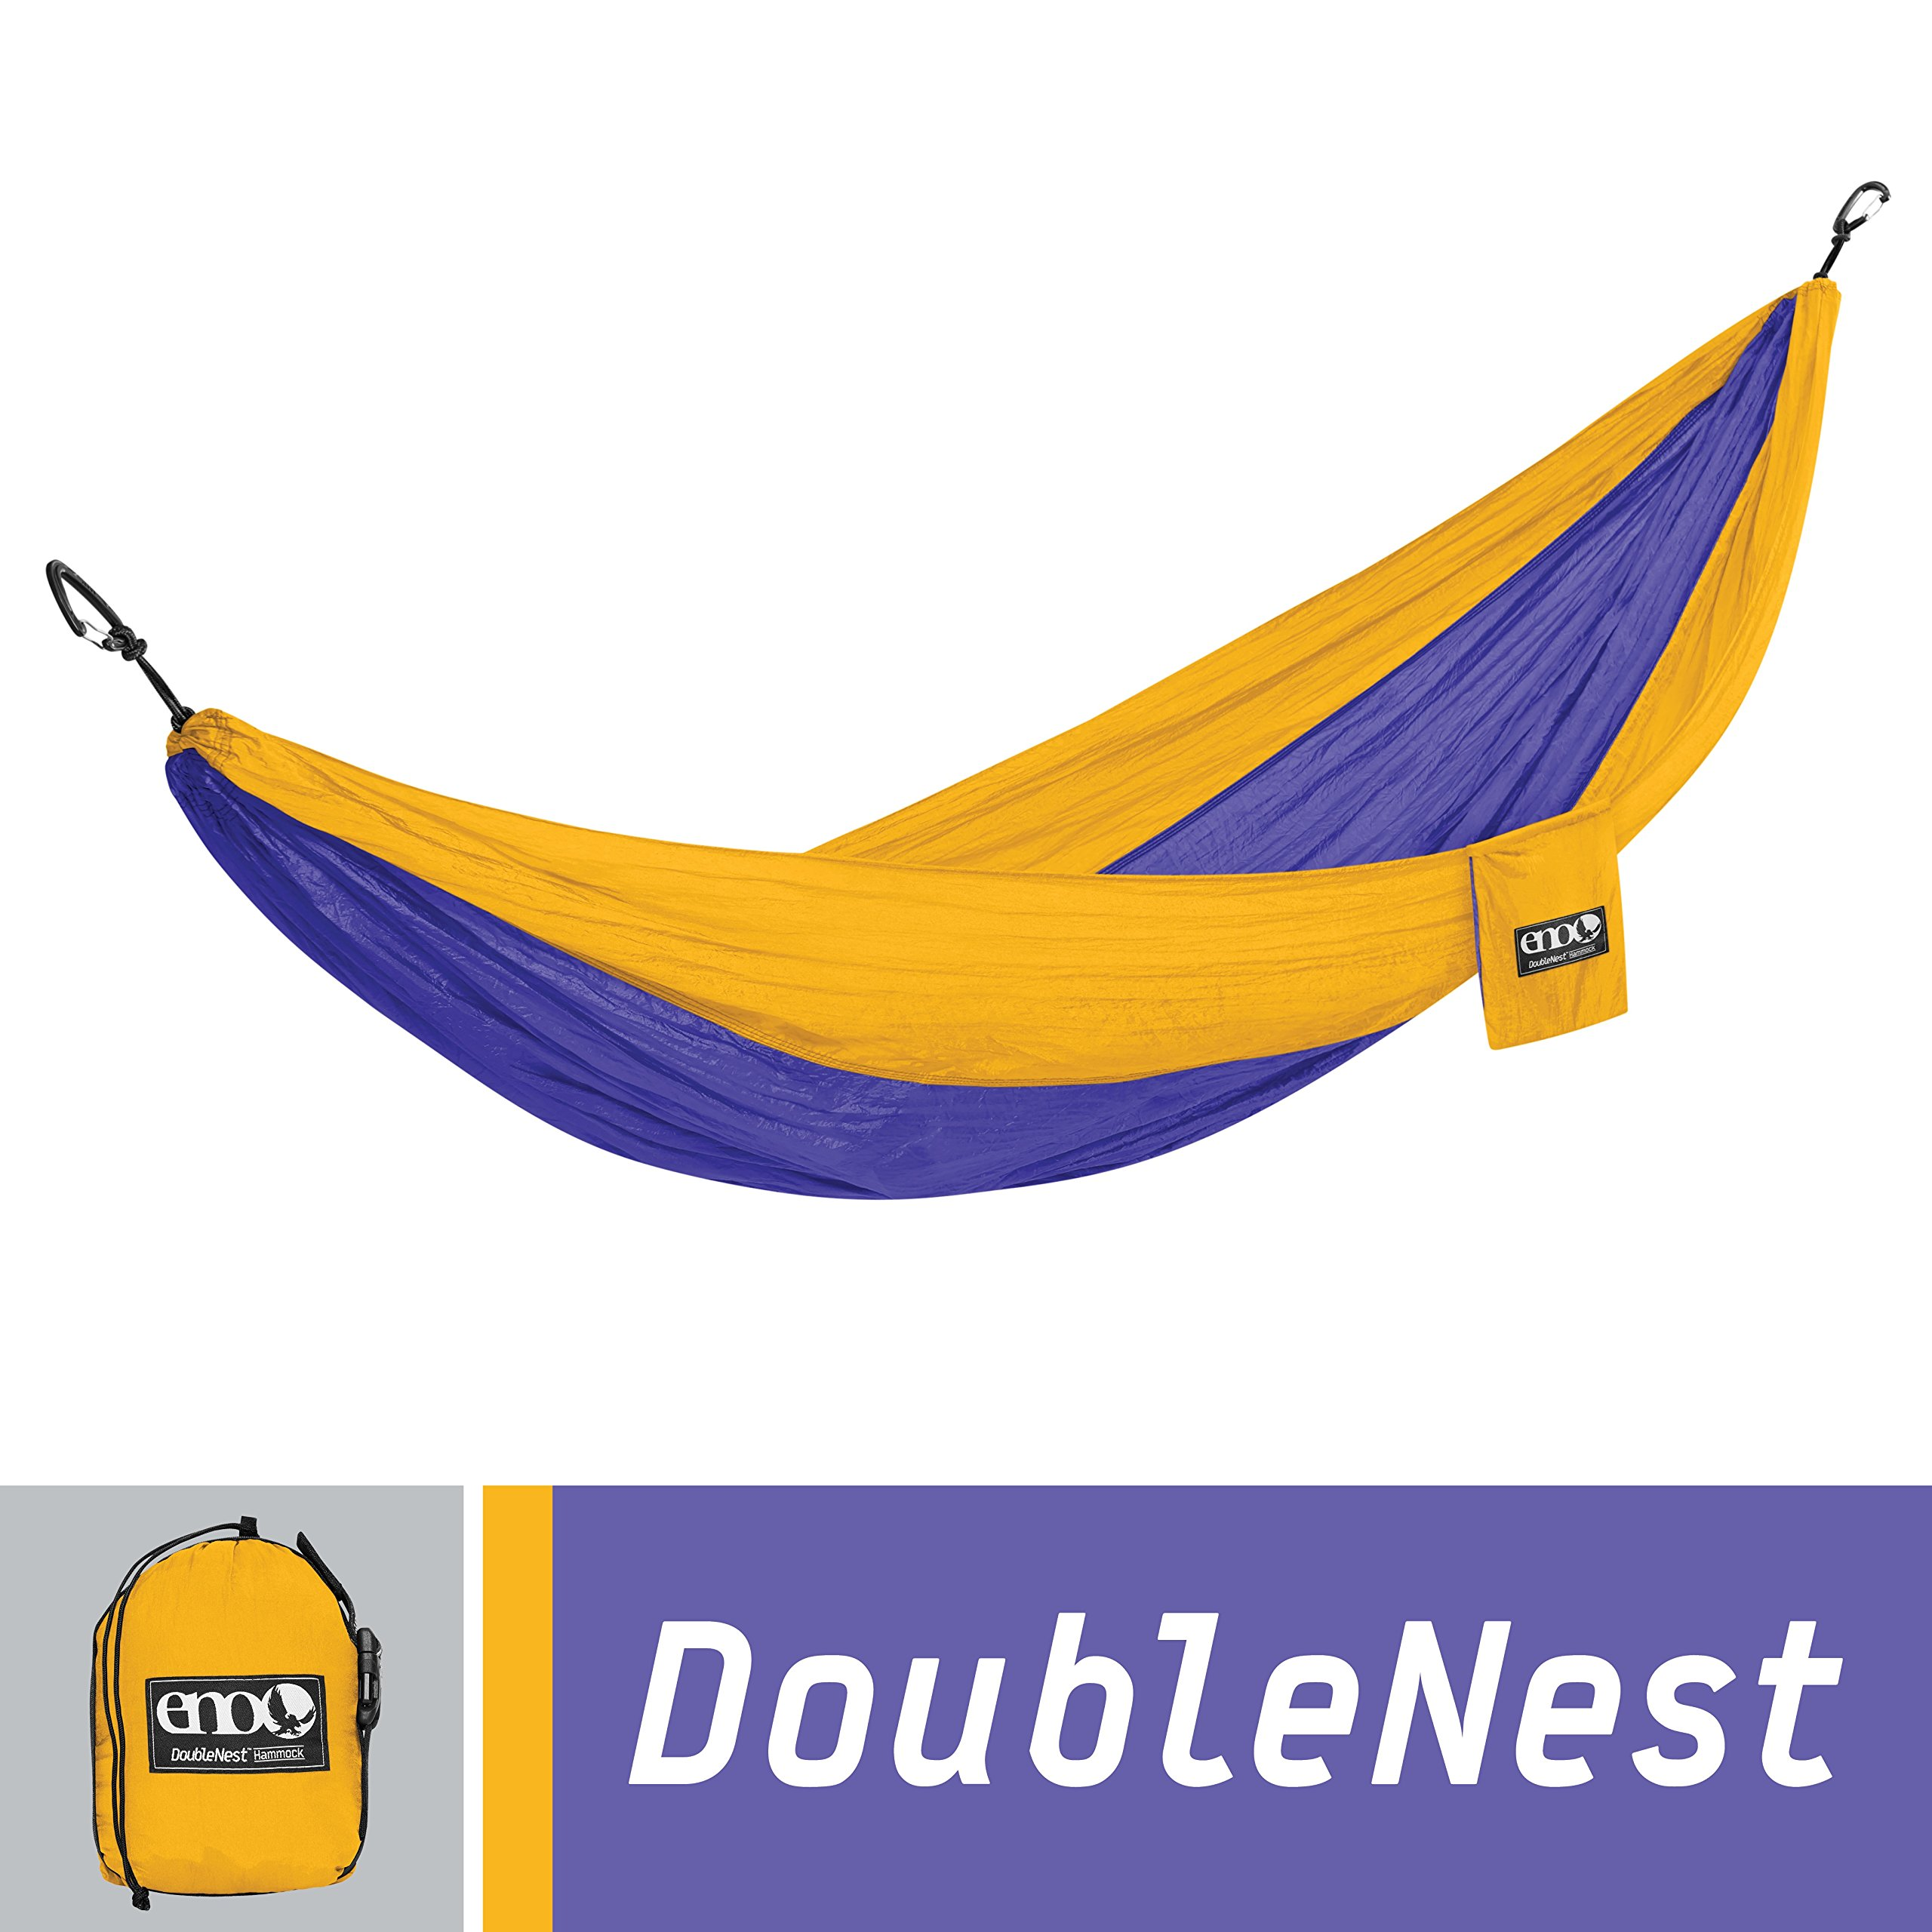 ENO Eagles Nest Outfitters - DoubleNest Hammock, Portable Hammock for Two, Purple/Marigold